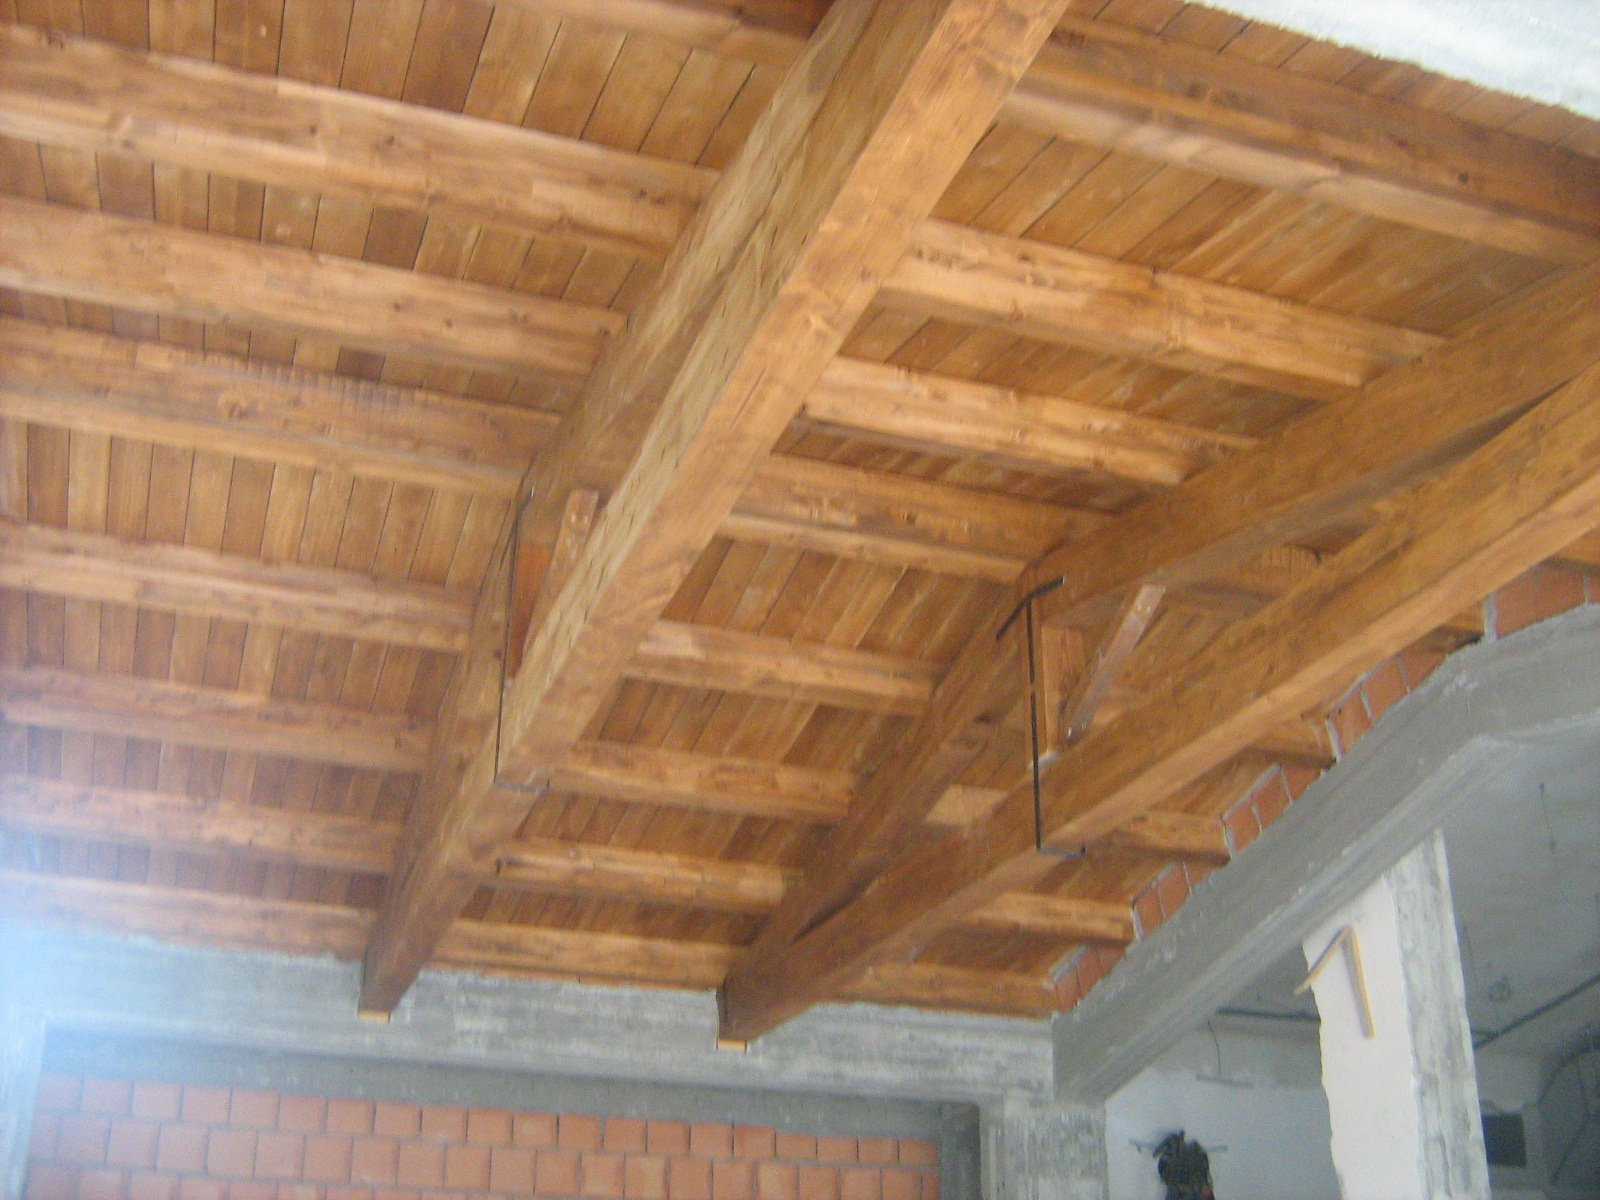 soffitto con travi a vista